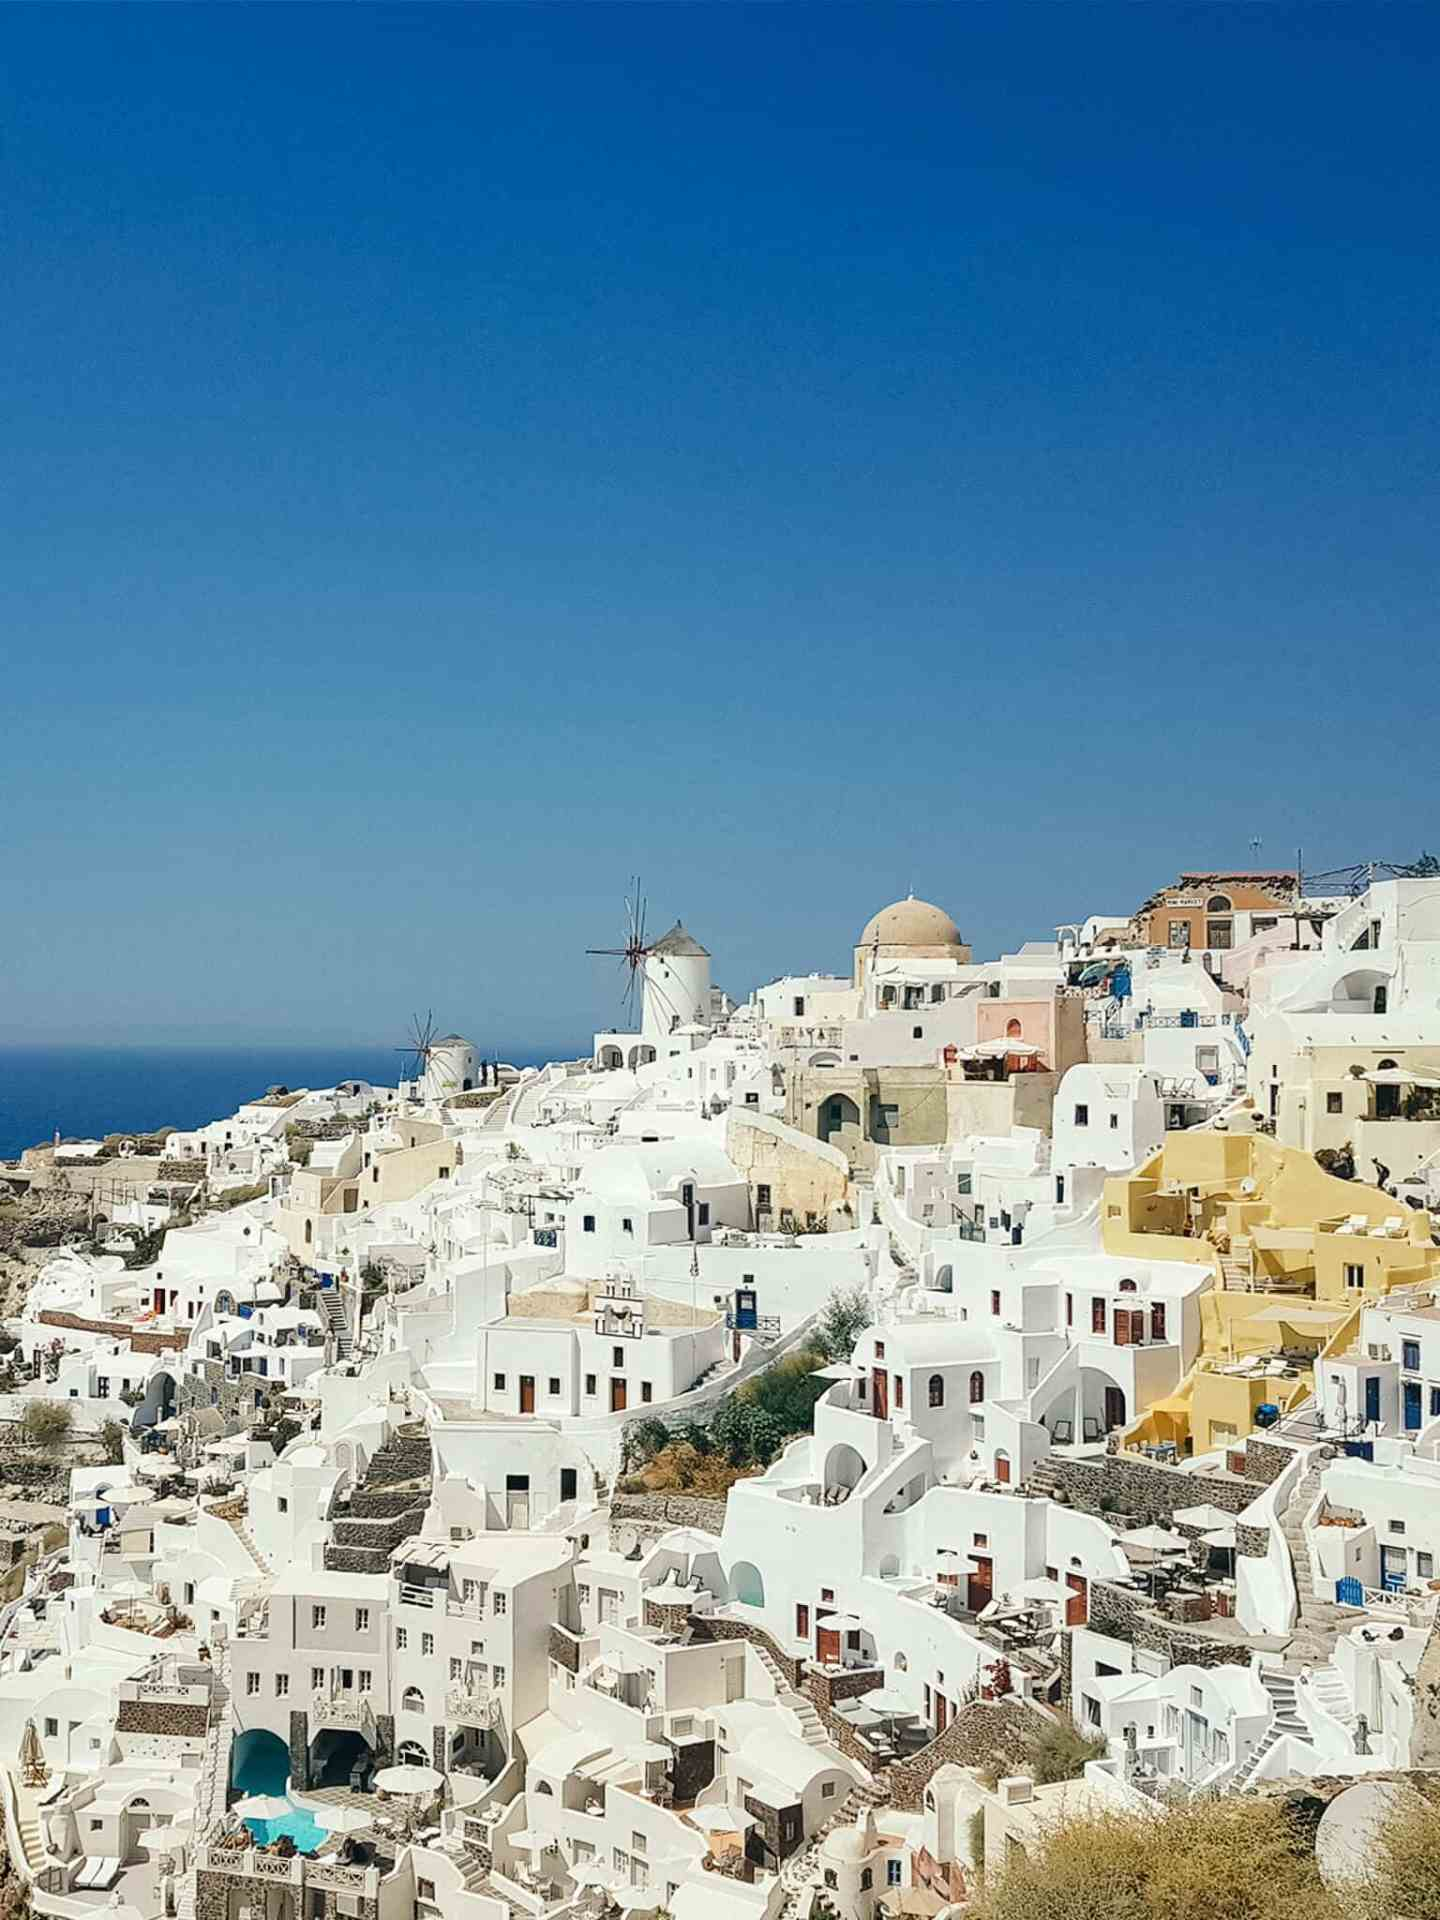 White buildings in Greece against a blue sky